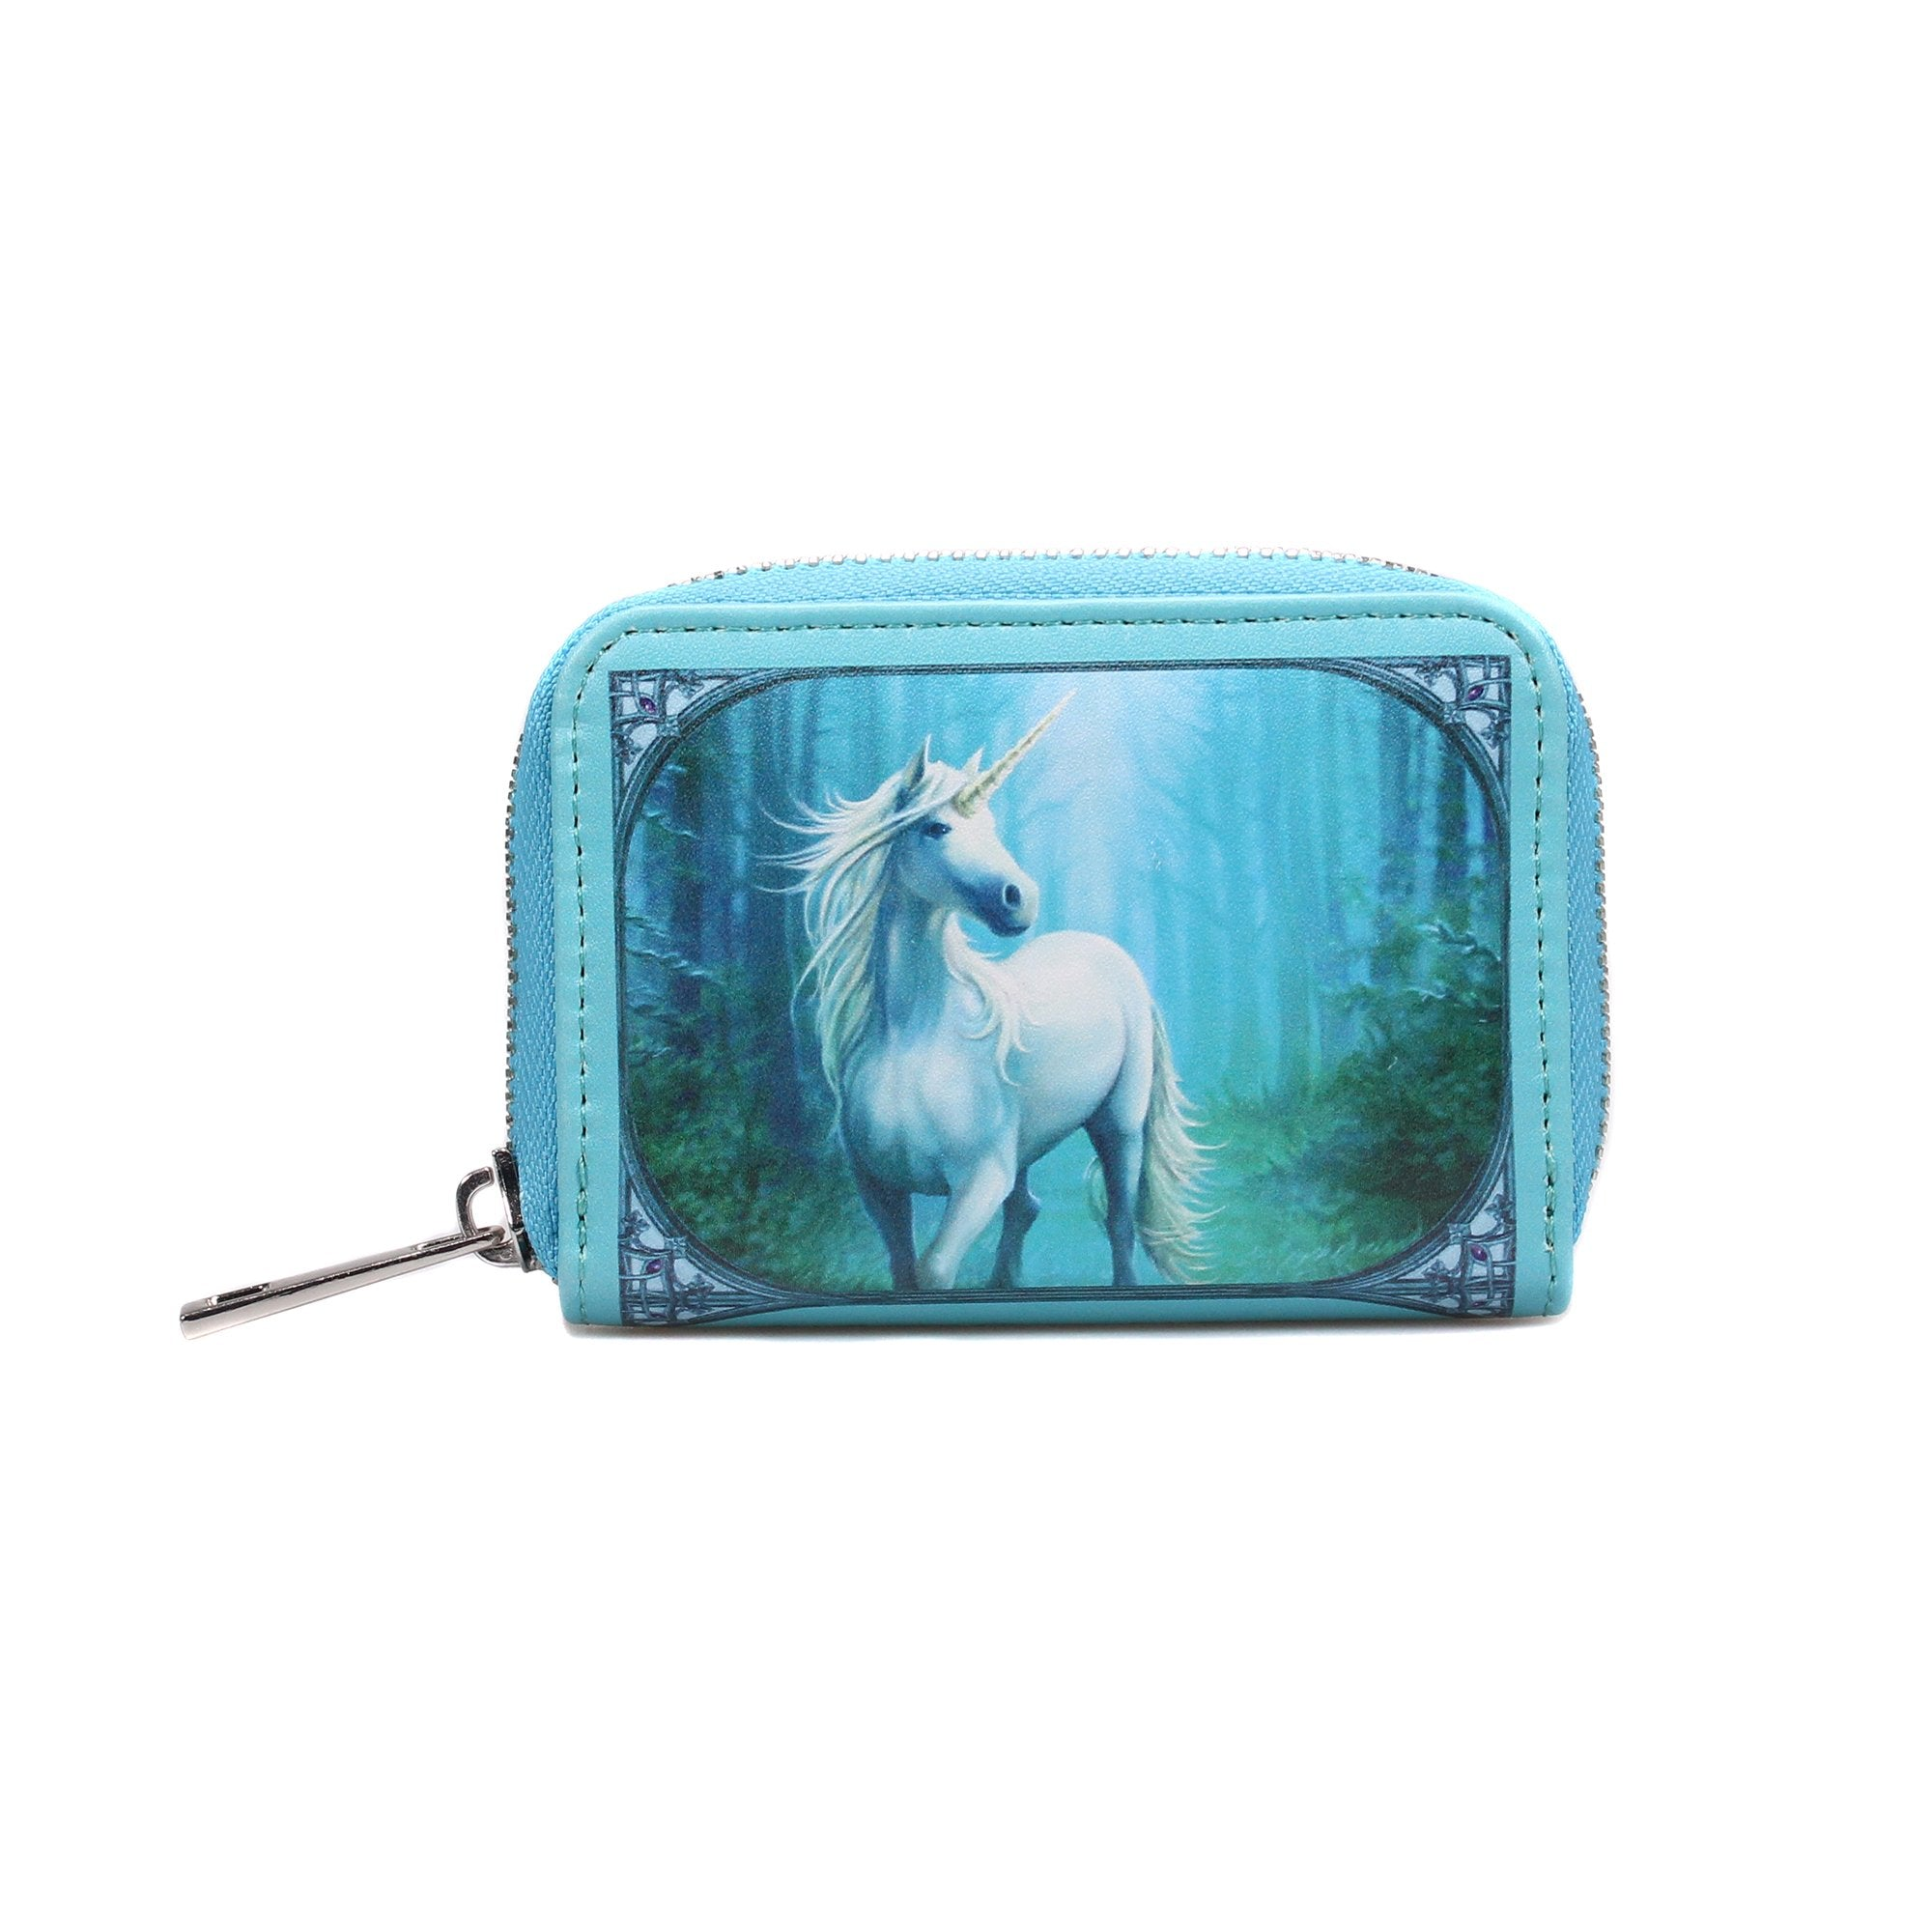 Anne Stokes Coin Purse - Forest Unicorn - Half Moon Bay US